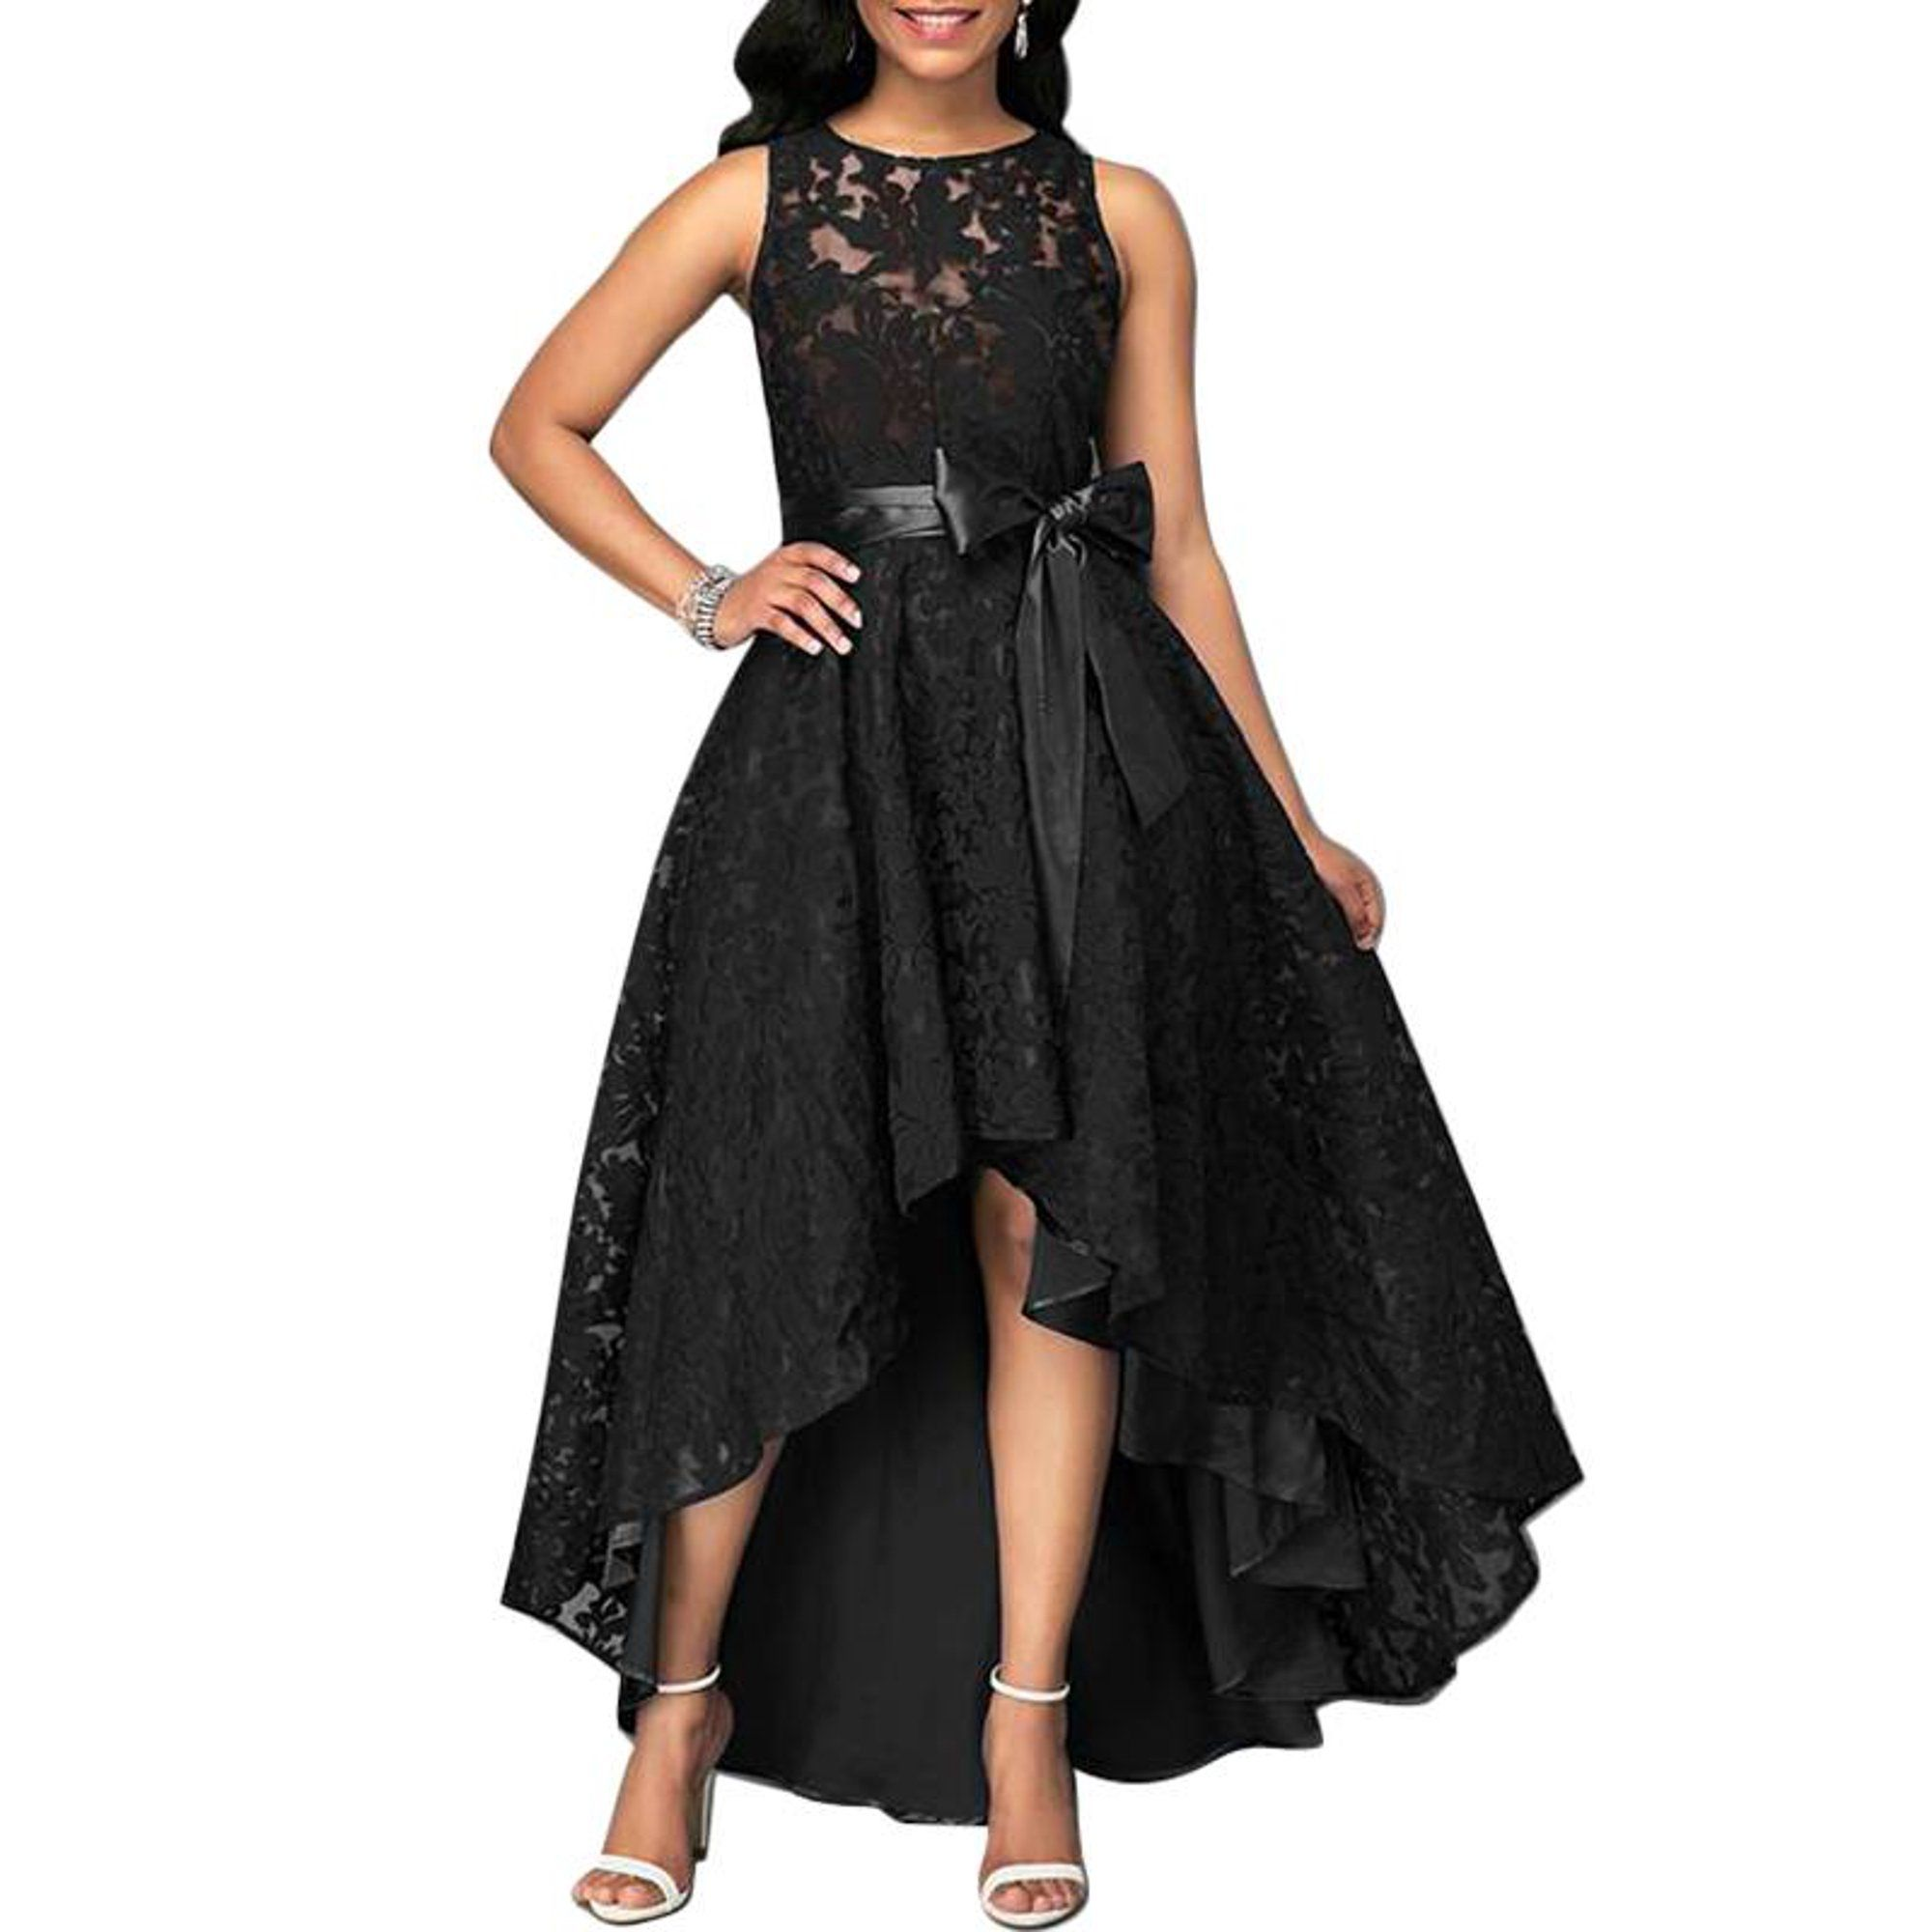 Justvh Justvh Women S Formal Floral Lace Sleeveless High Low Evening Party Maxi Dress Walmart C Lace Party Dresses Maxi Dress Party Party Dress Long Sleeve [ 2000 x 2000 Pixel ]